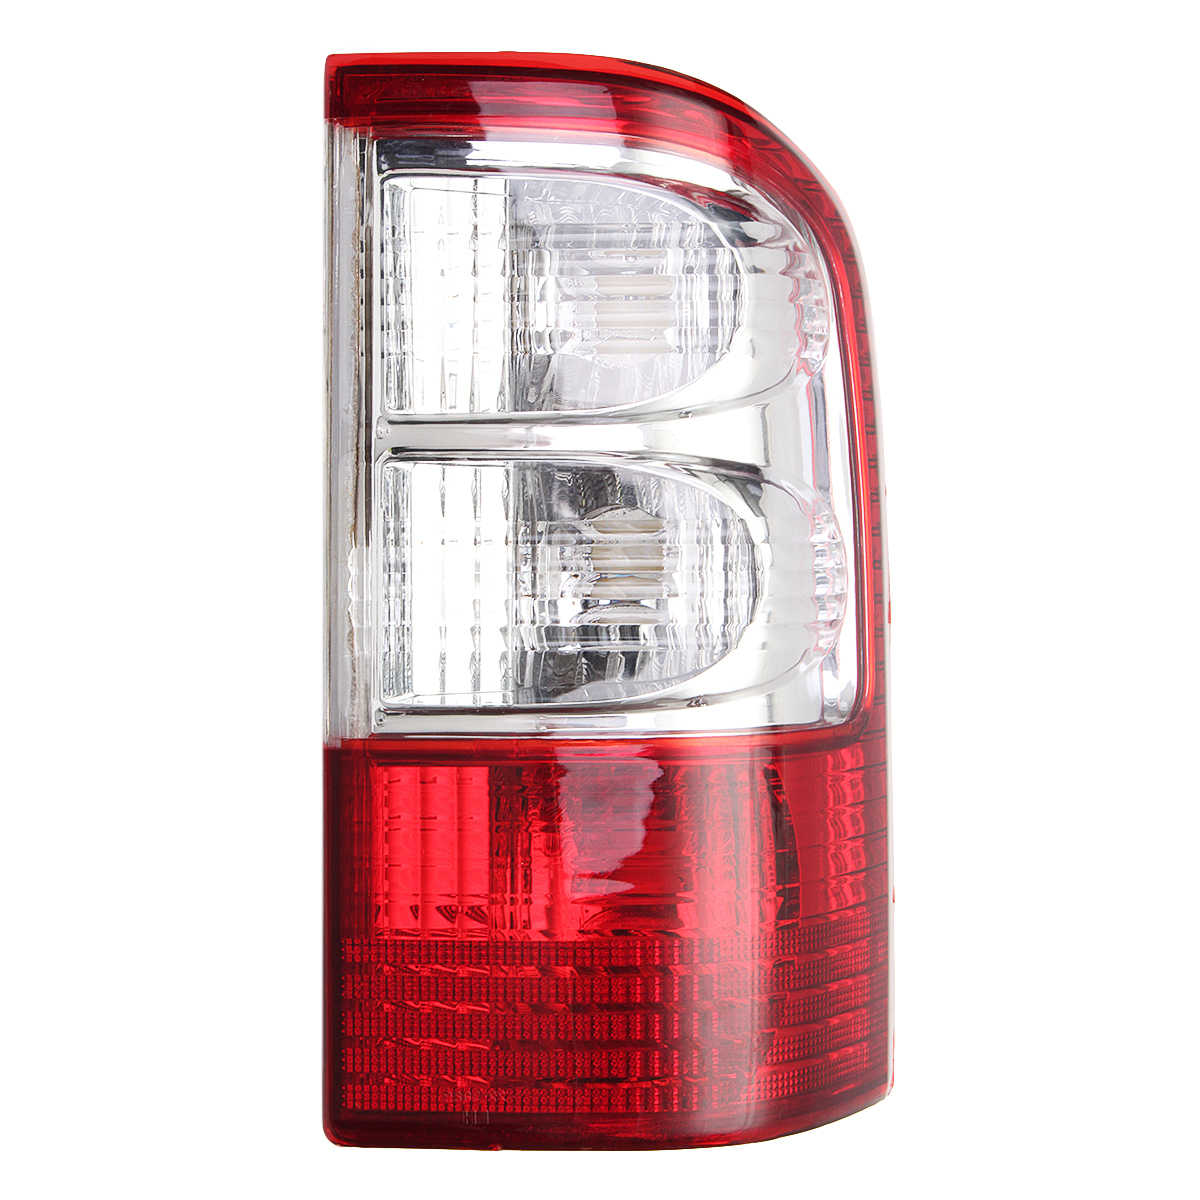 hight resolution of  tail light brake lamp w wire harness for nissan patrol gu series 2 2001 2002